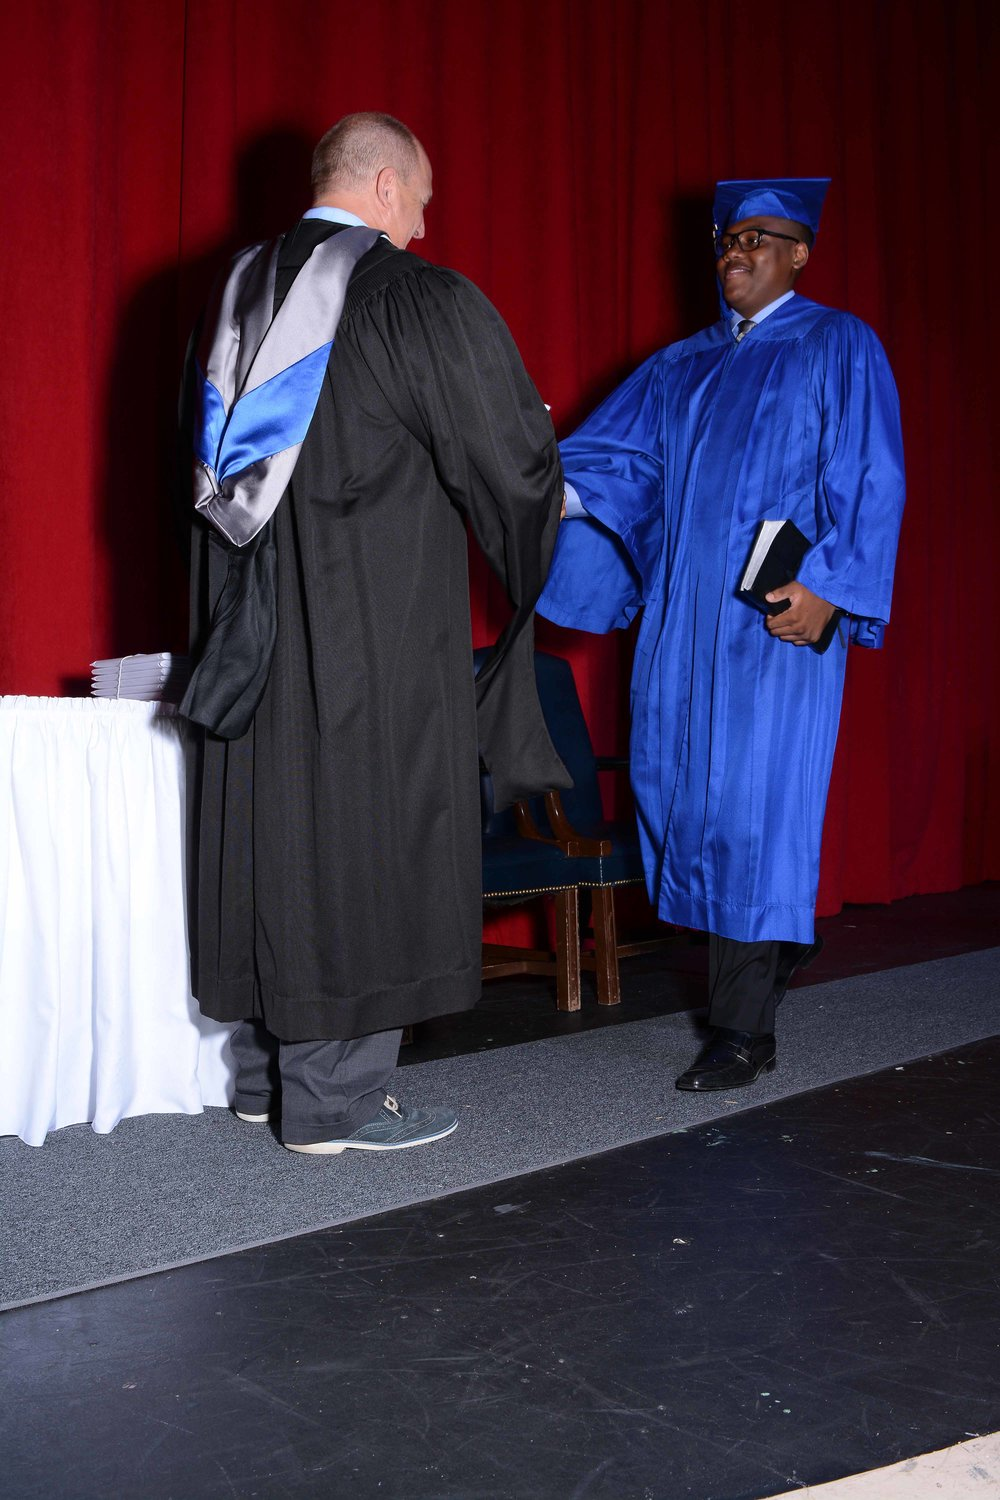 May14 Commencement166.jpg